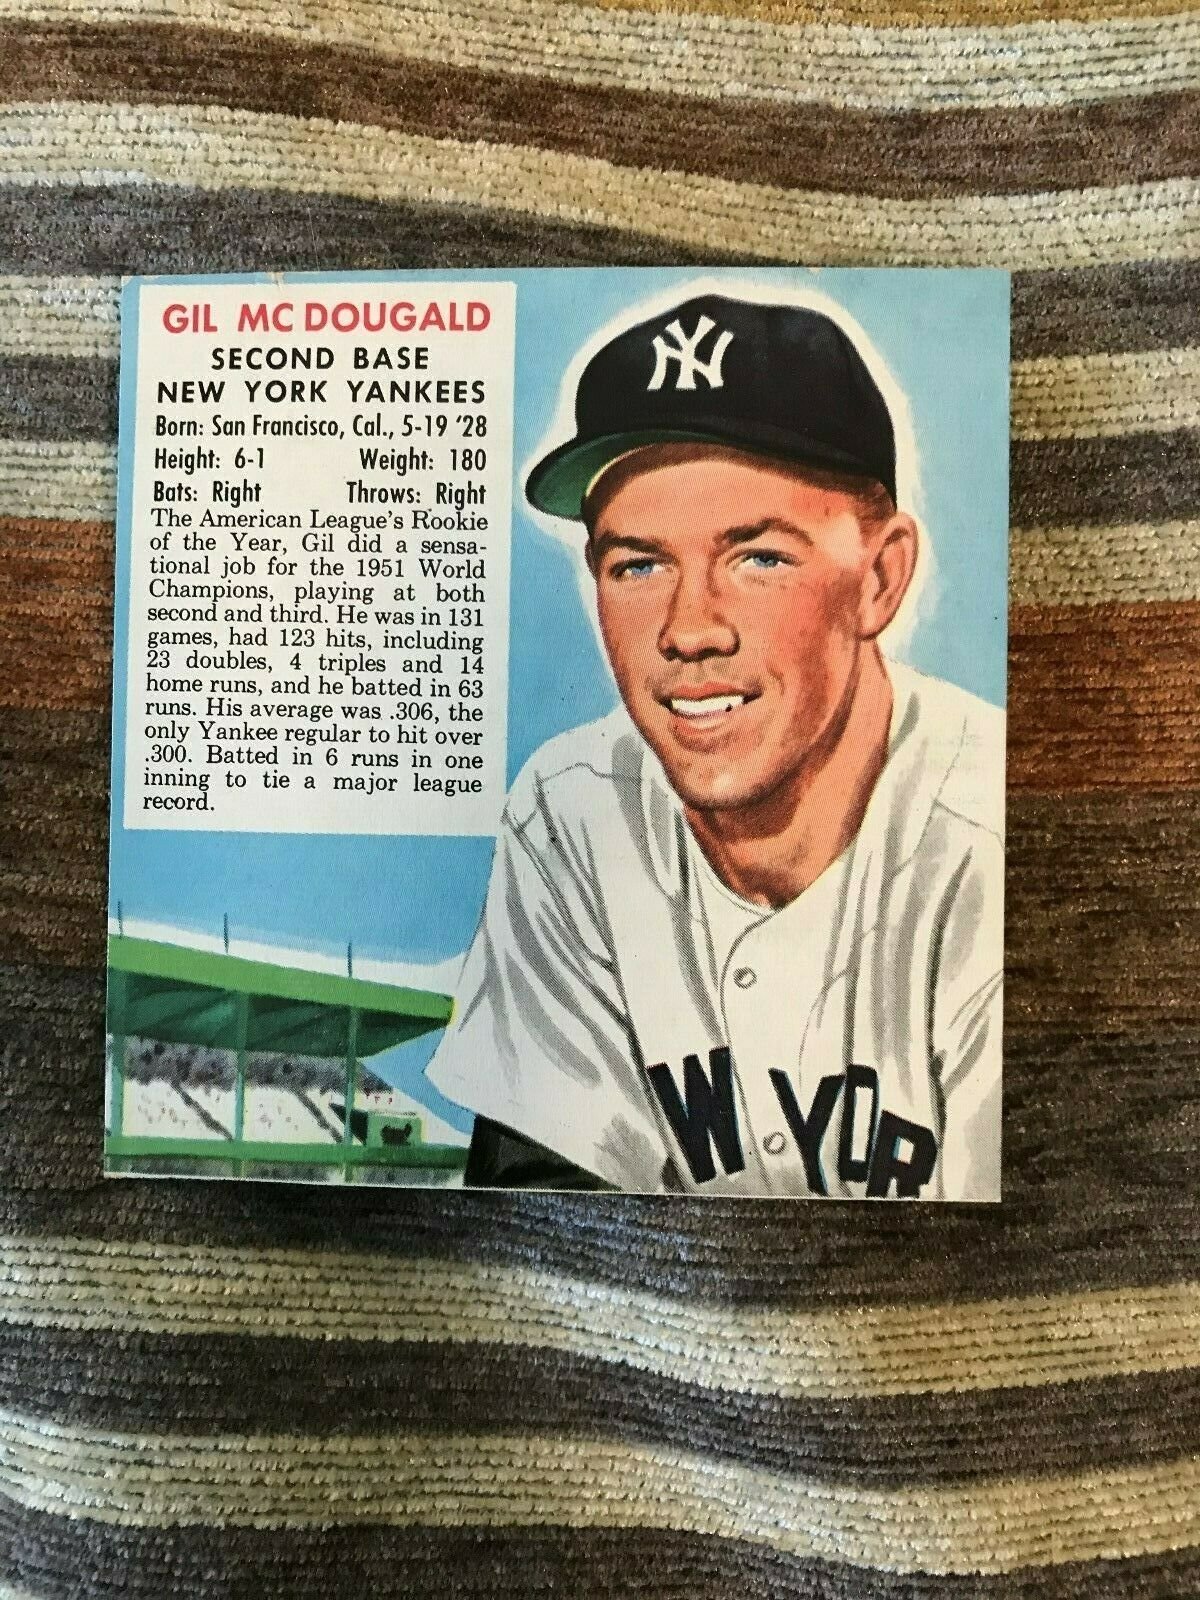 Primary image for 1952 Gil Mc Dougald Red Man Chewing Tobacco baseball card